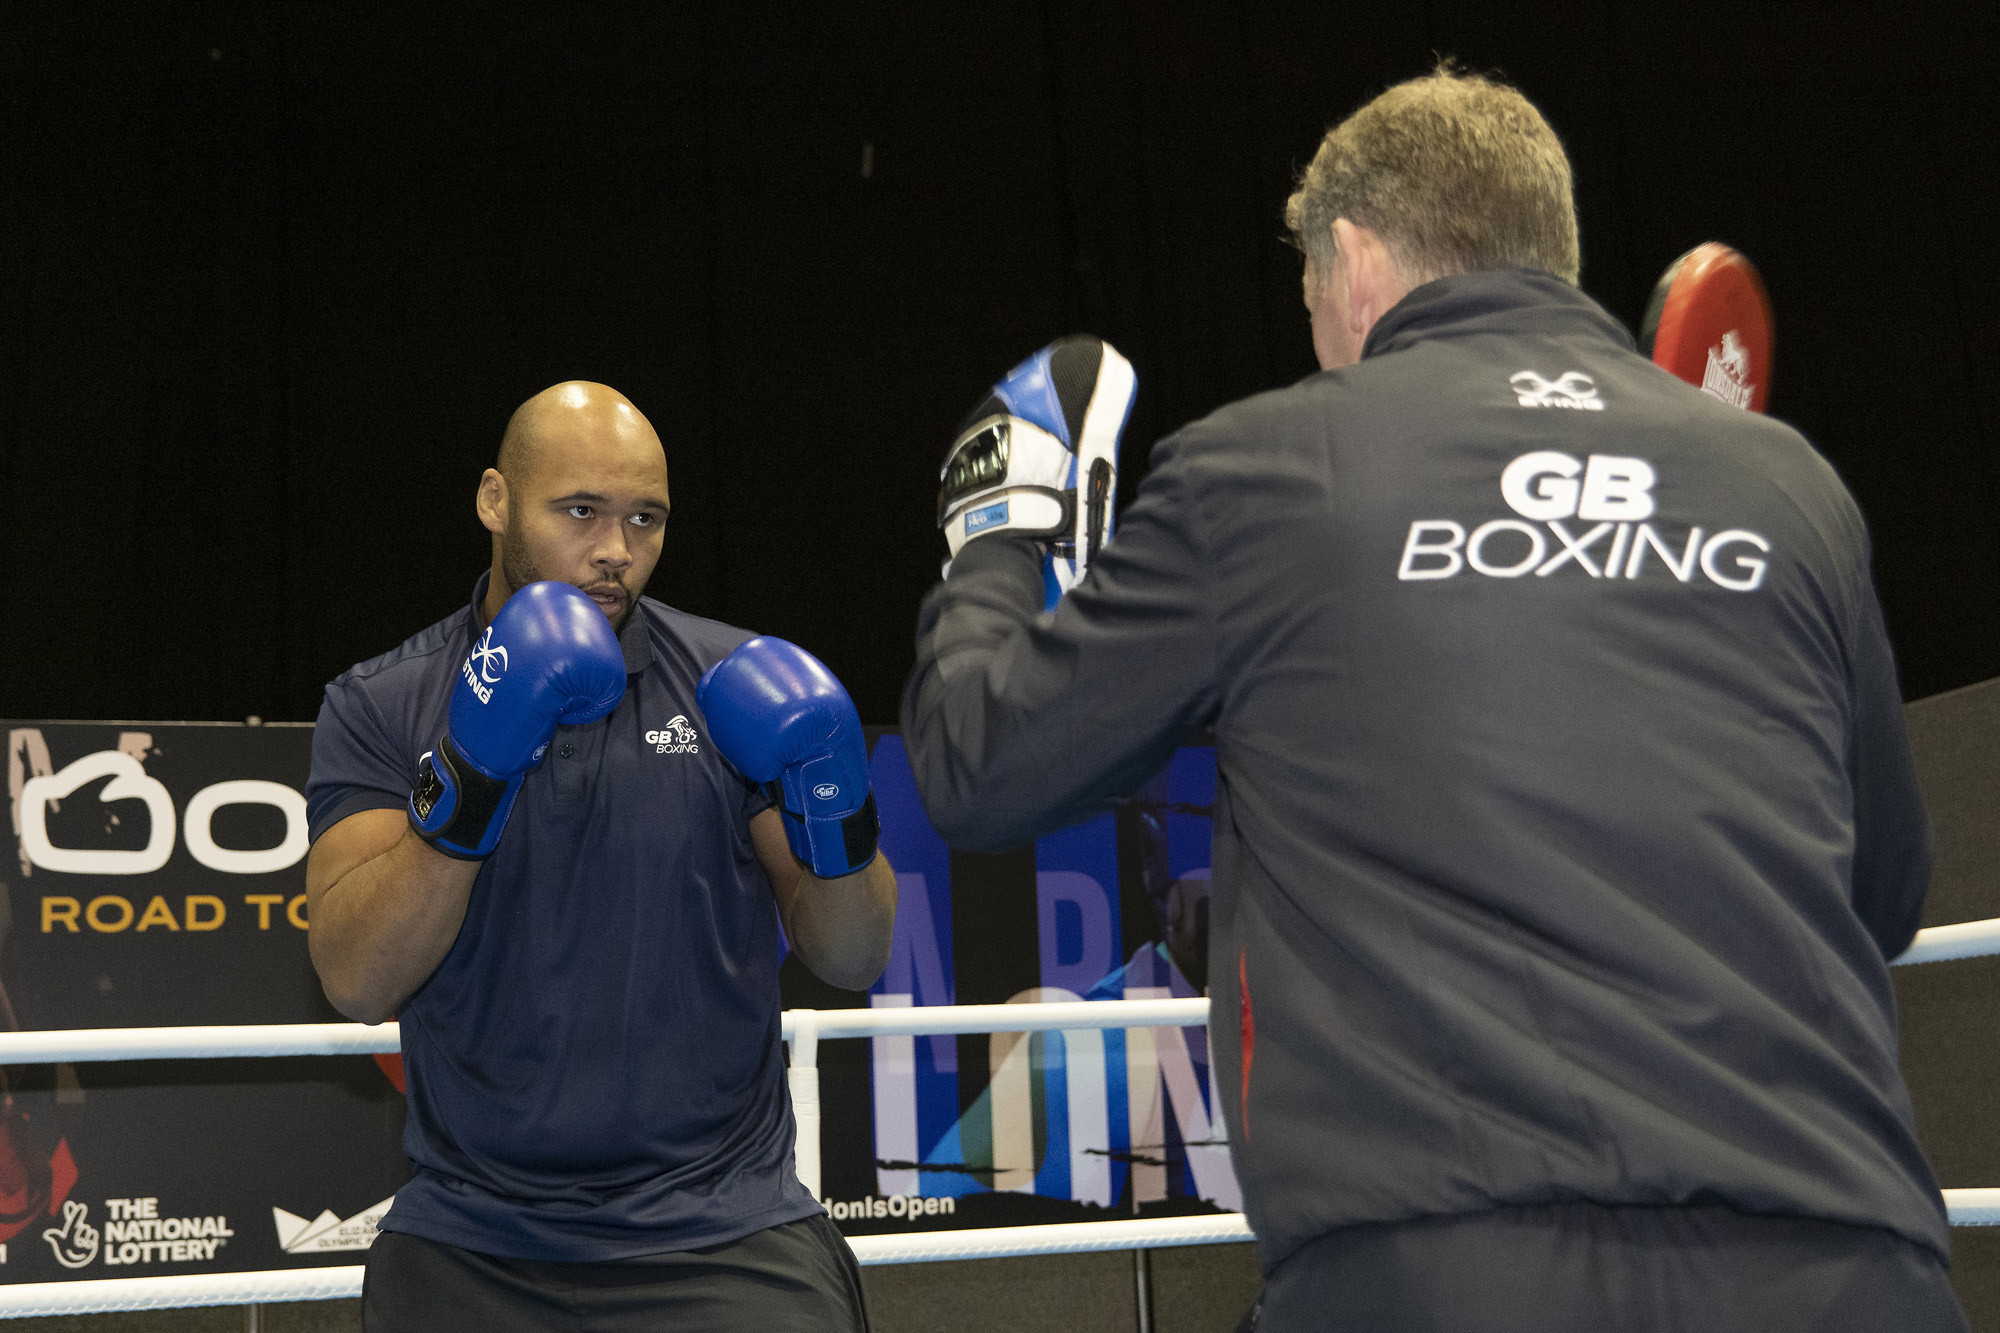 British boxers to resume contact training as virus restrictions ease